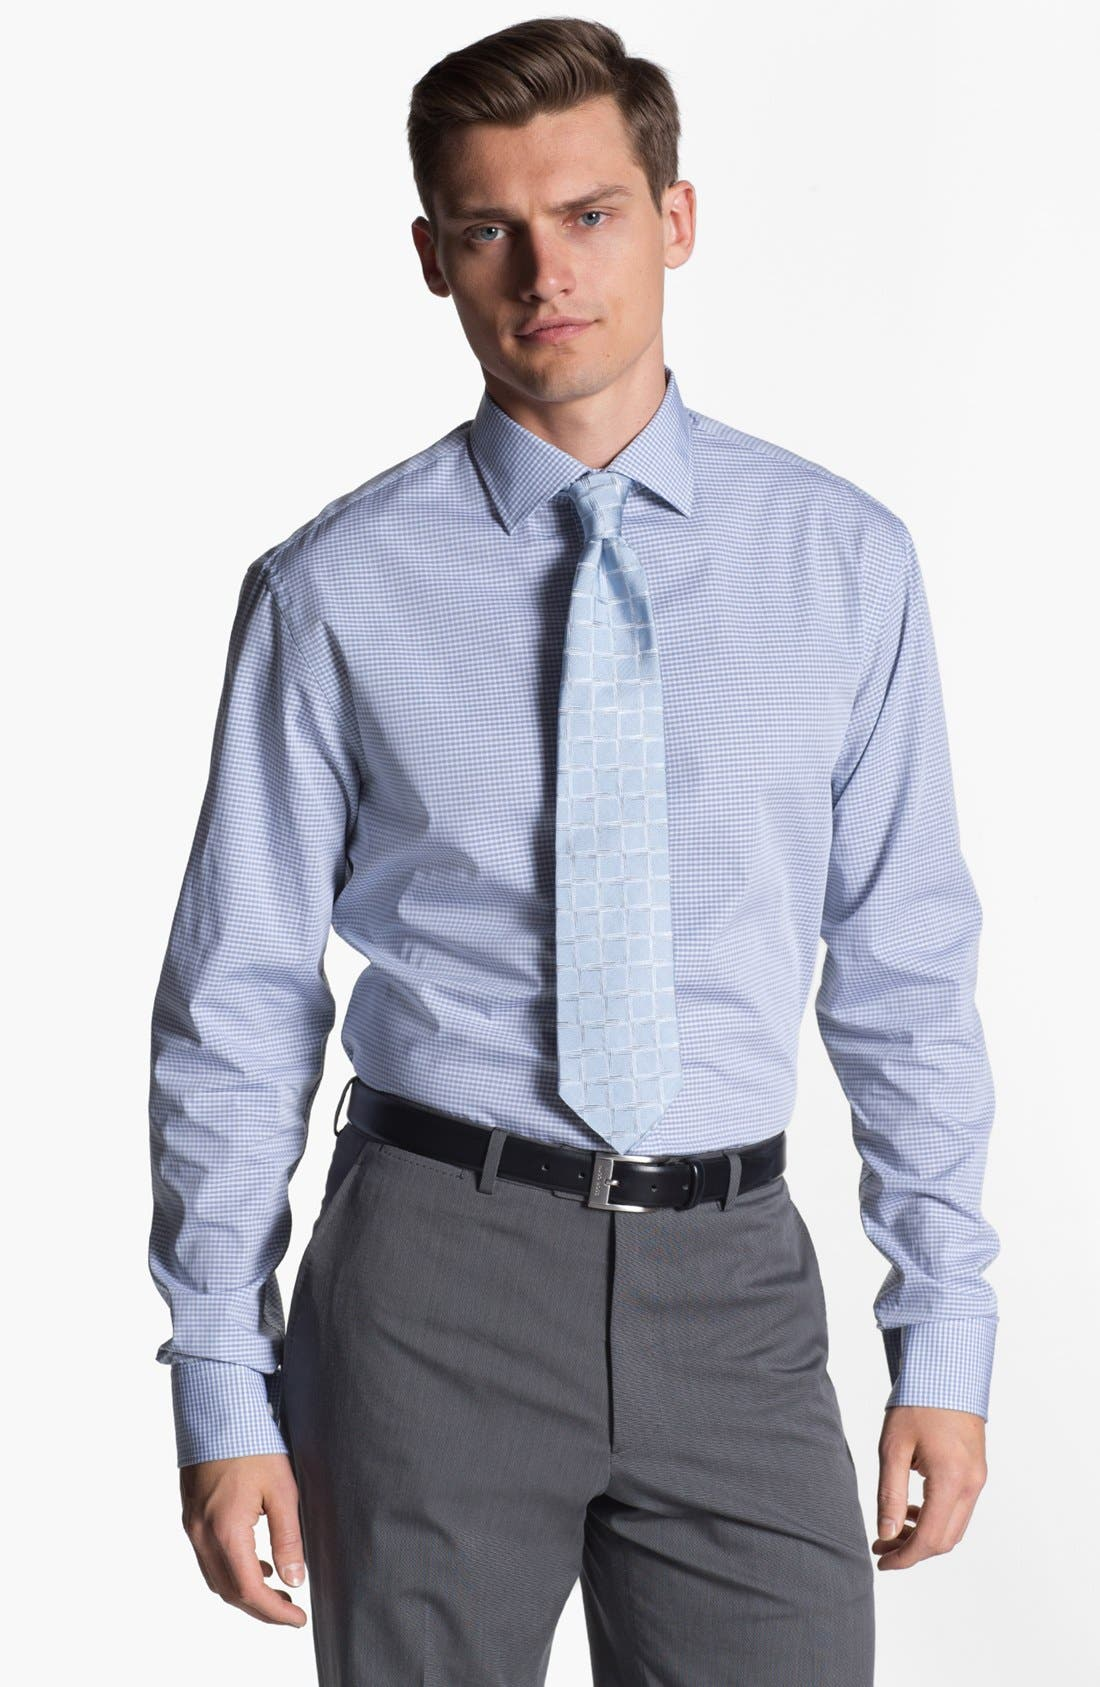 Main Image - Armani Collezioni Trim Fit Check Cotton Dress Shirt